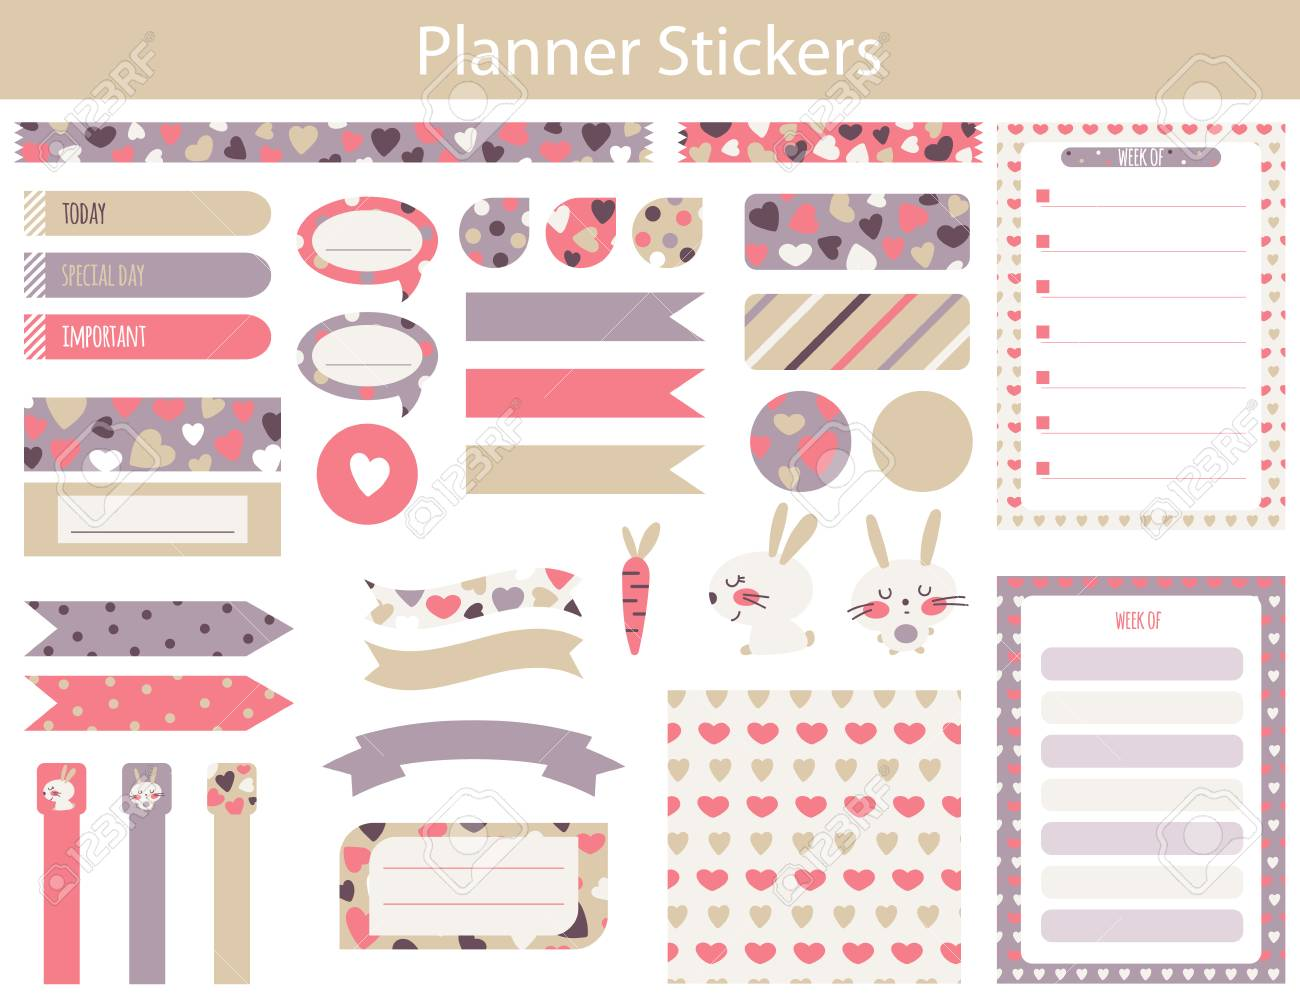 planner stickers with cute